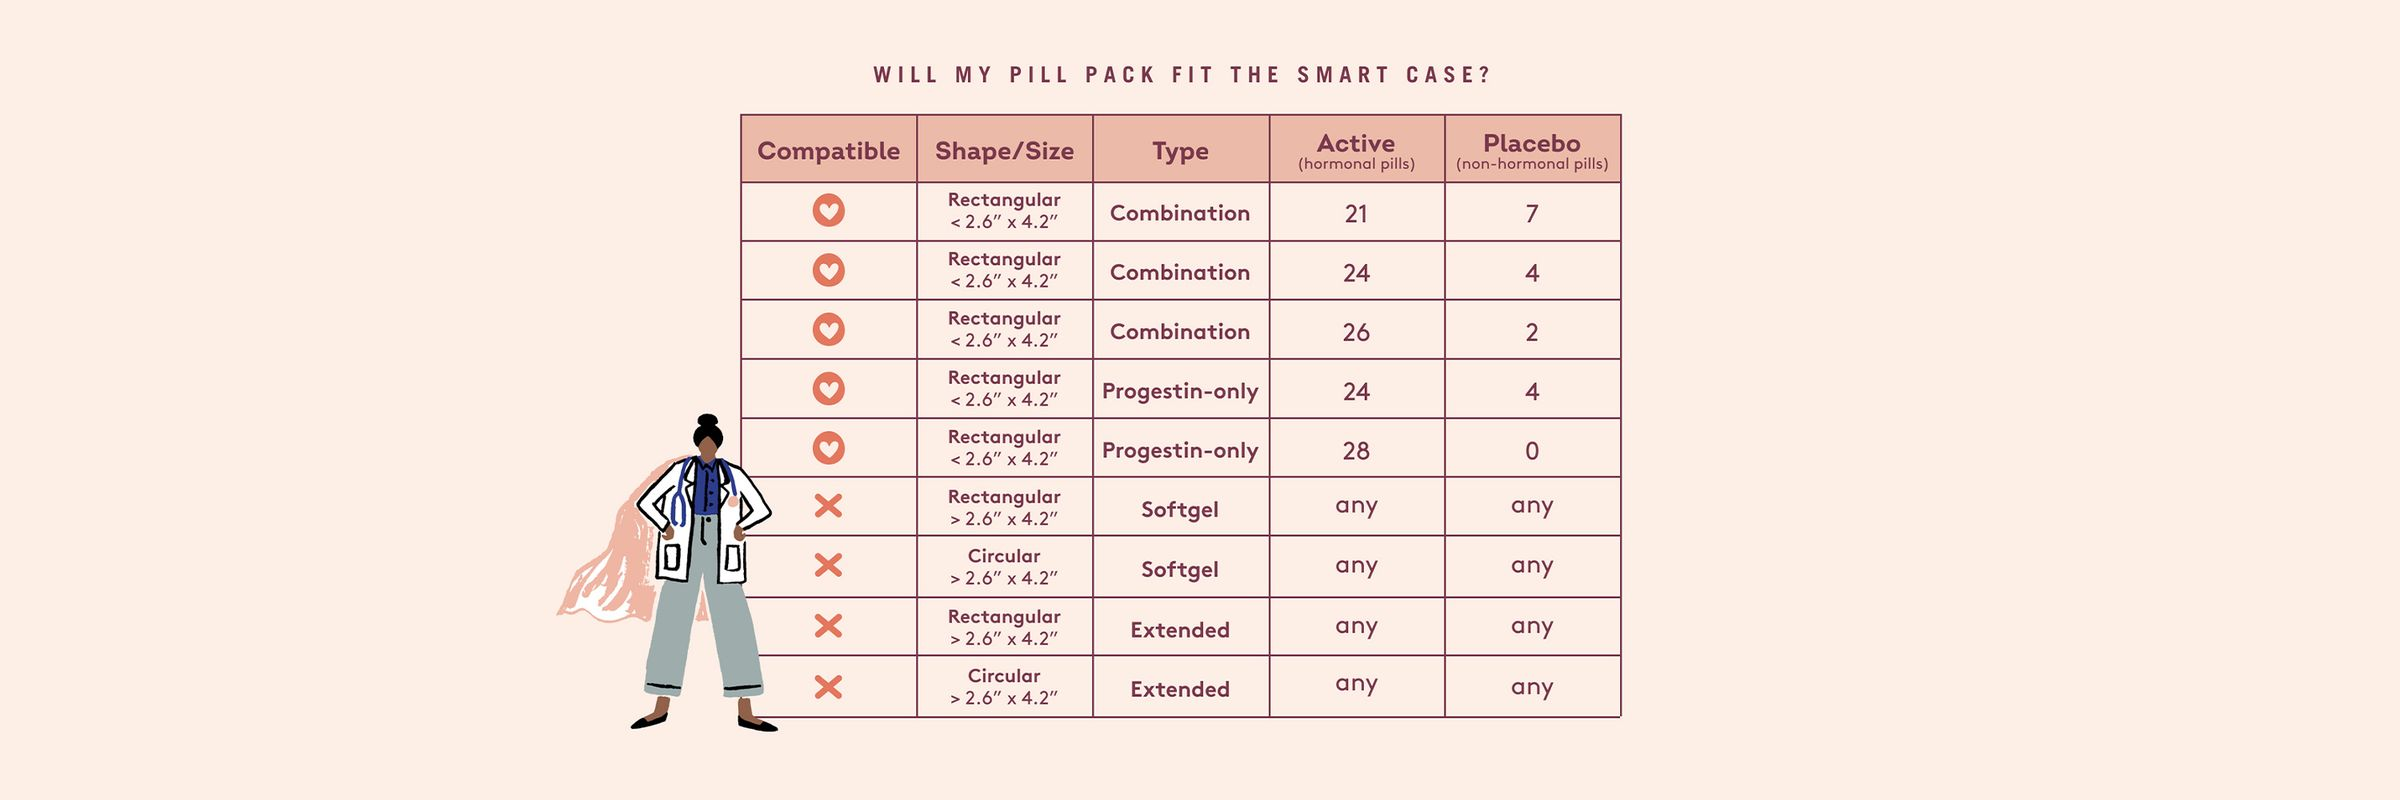 chart of pills compatible with the Emme Smart Case